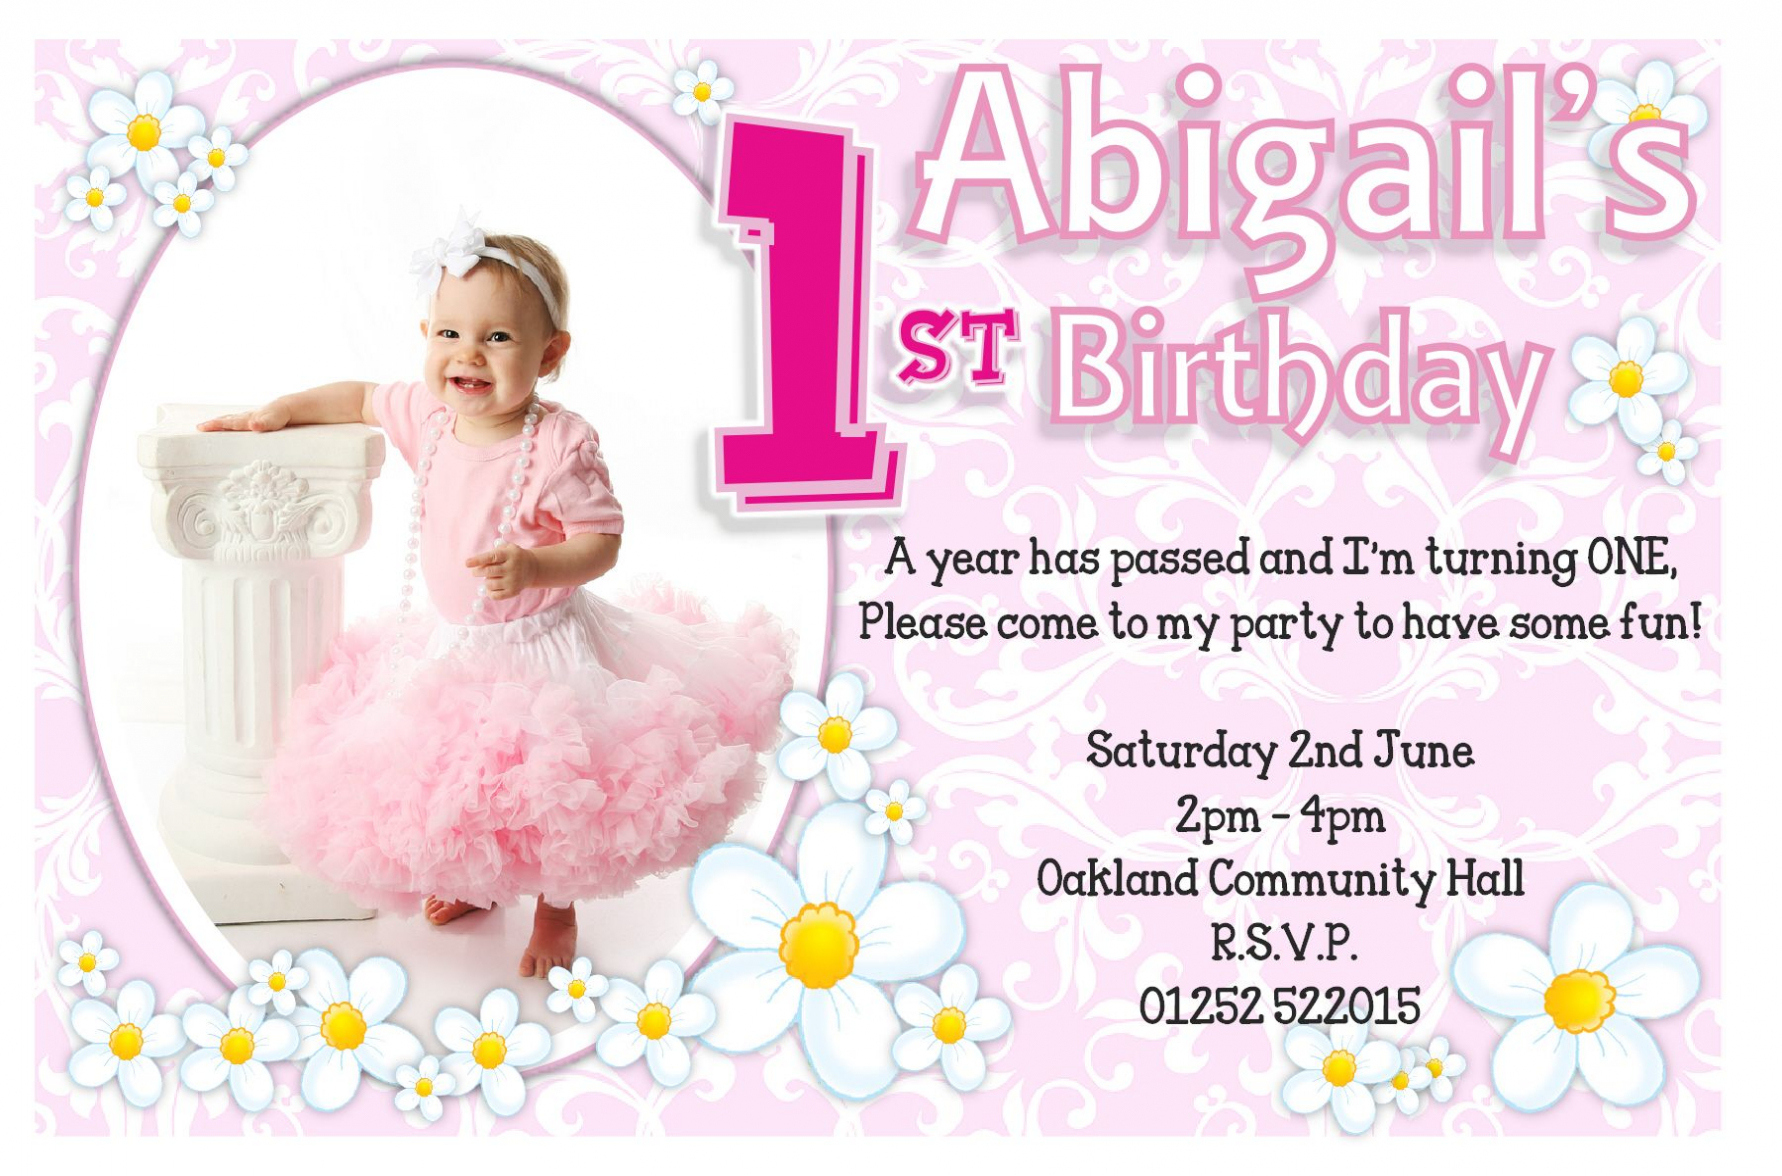 first birthday invitation letter ; invitation-message-for-1st-birthday-party-birthday-first-birthday-invitation-letter-first-birthday-1